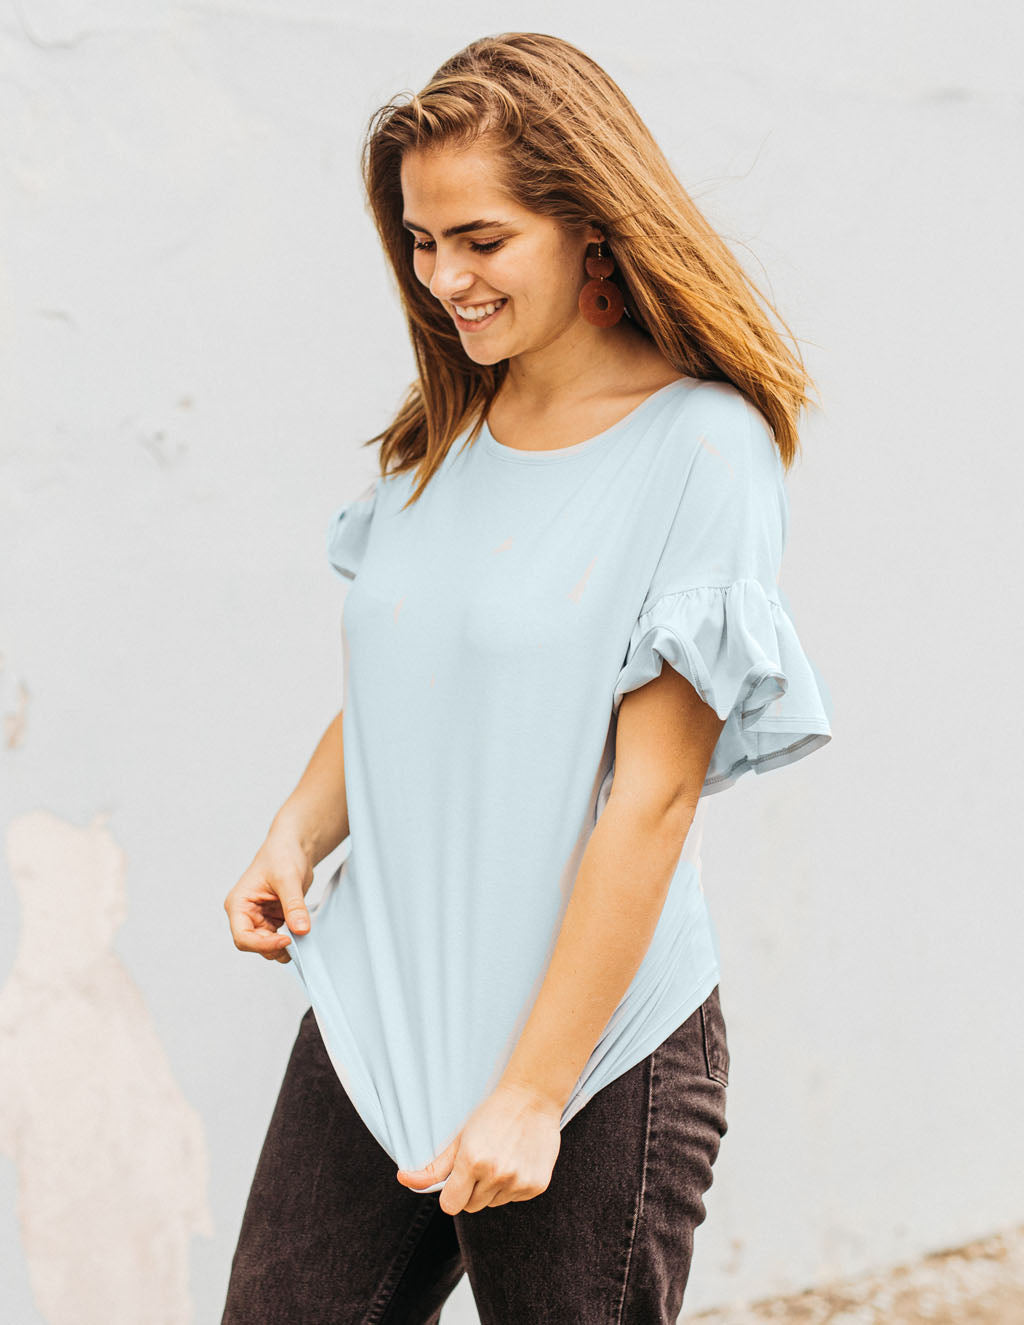 KARA relaxed top in Ballad Blue